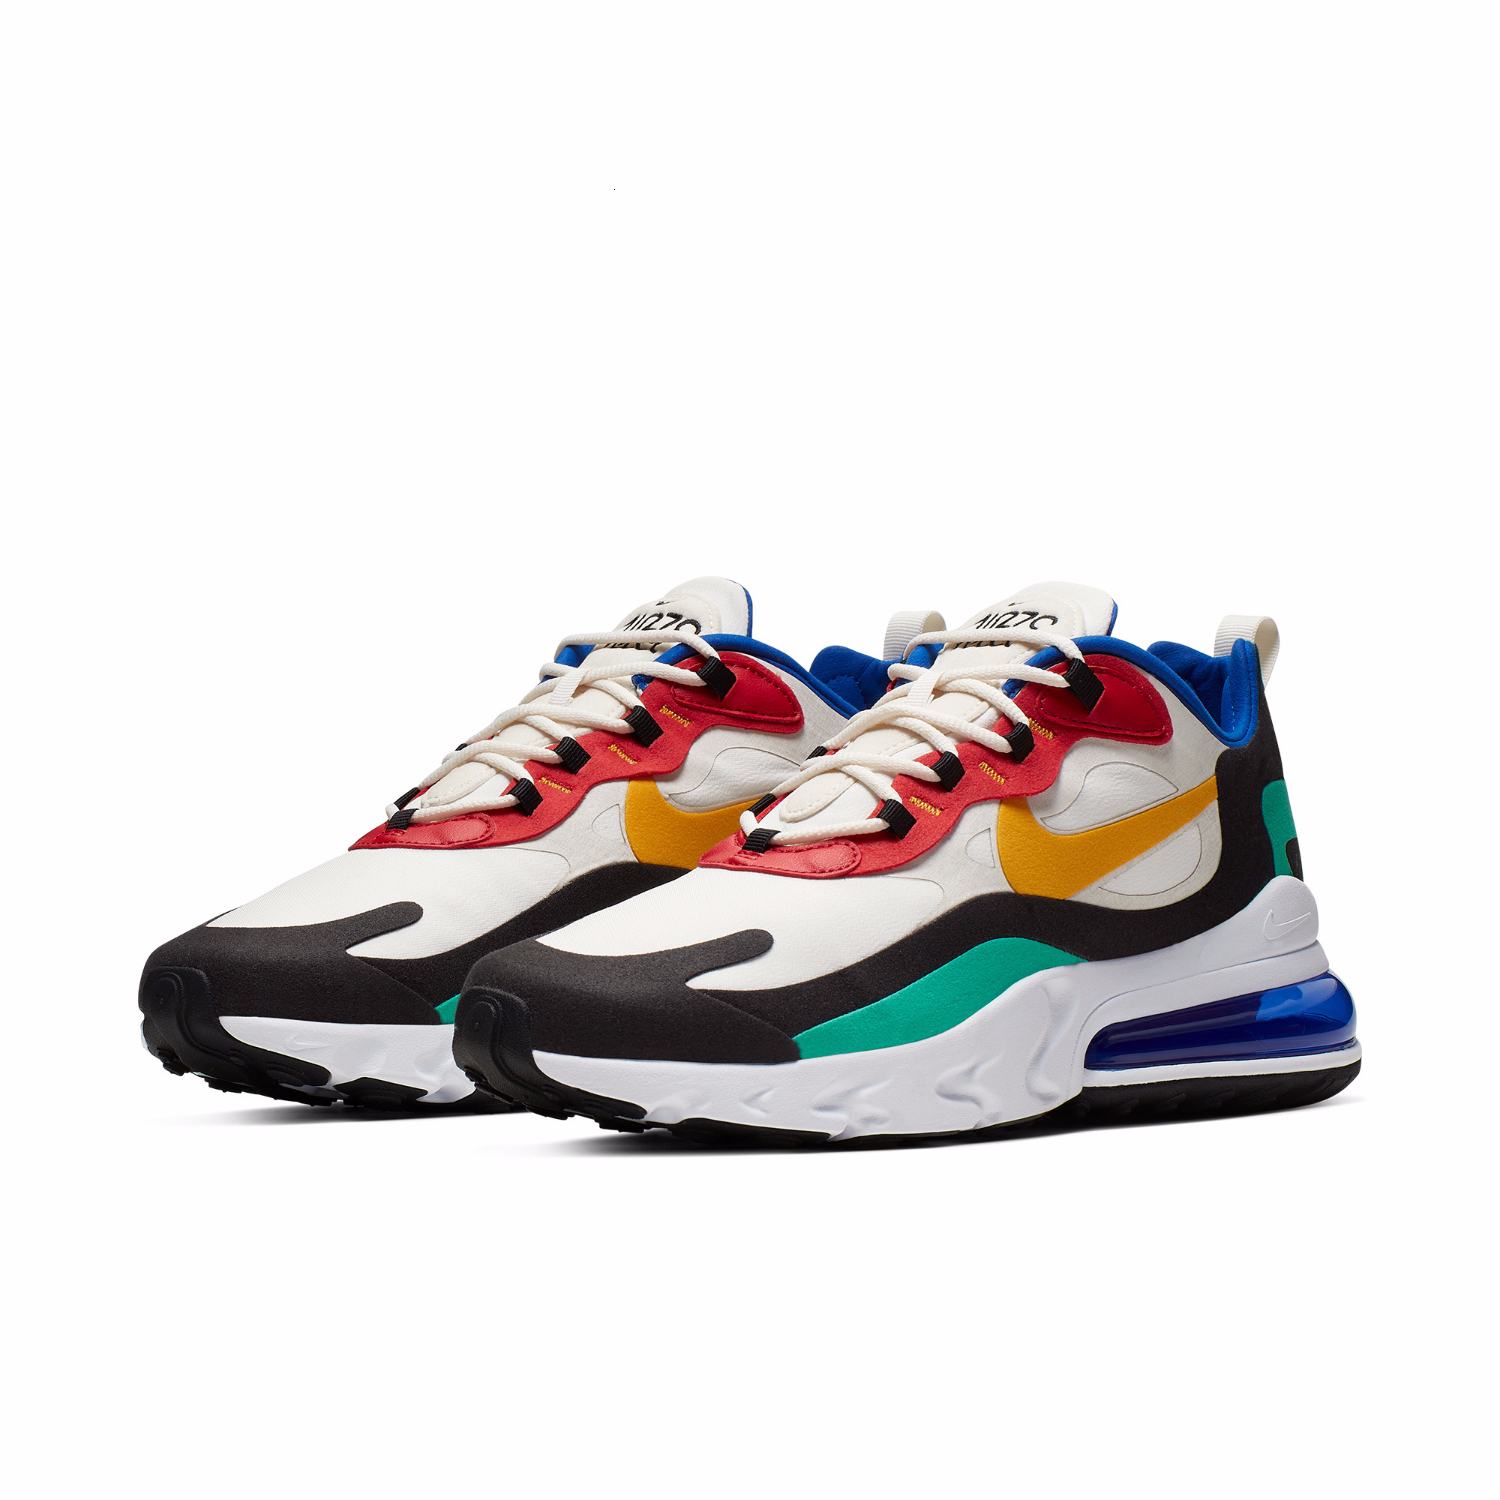 Nike Air Max 270 React New Arrival Men Running Shoes Comfortable Air Cushion Outdoor Sports Sneakers Men #AO4971